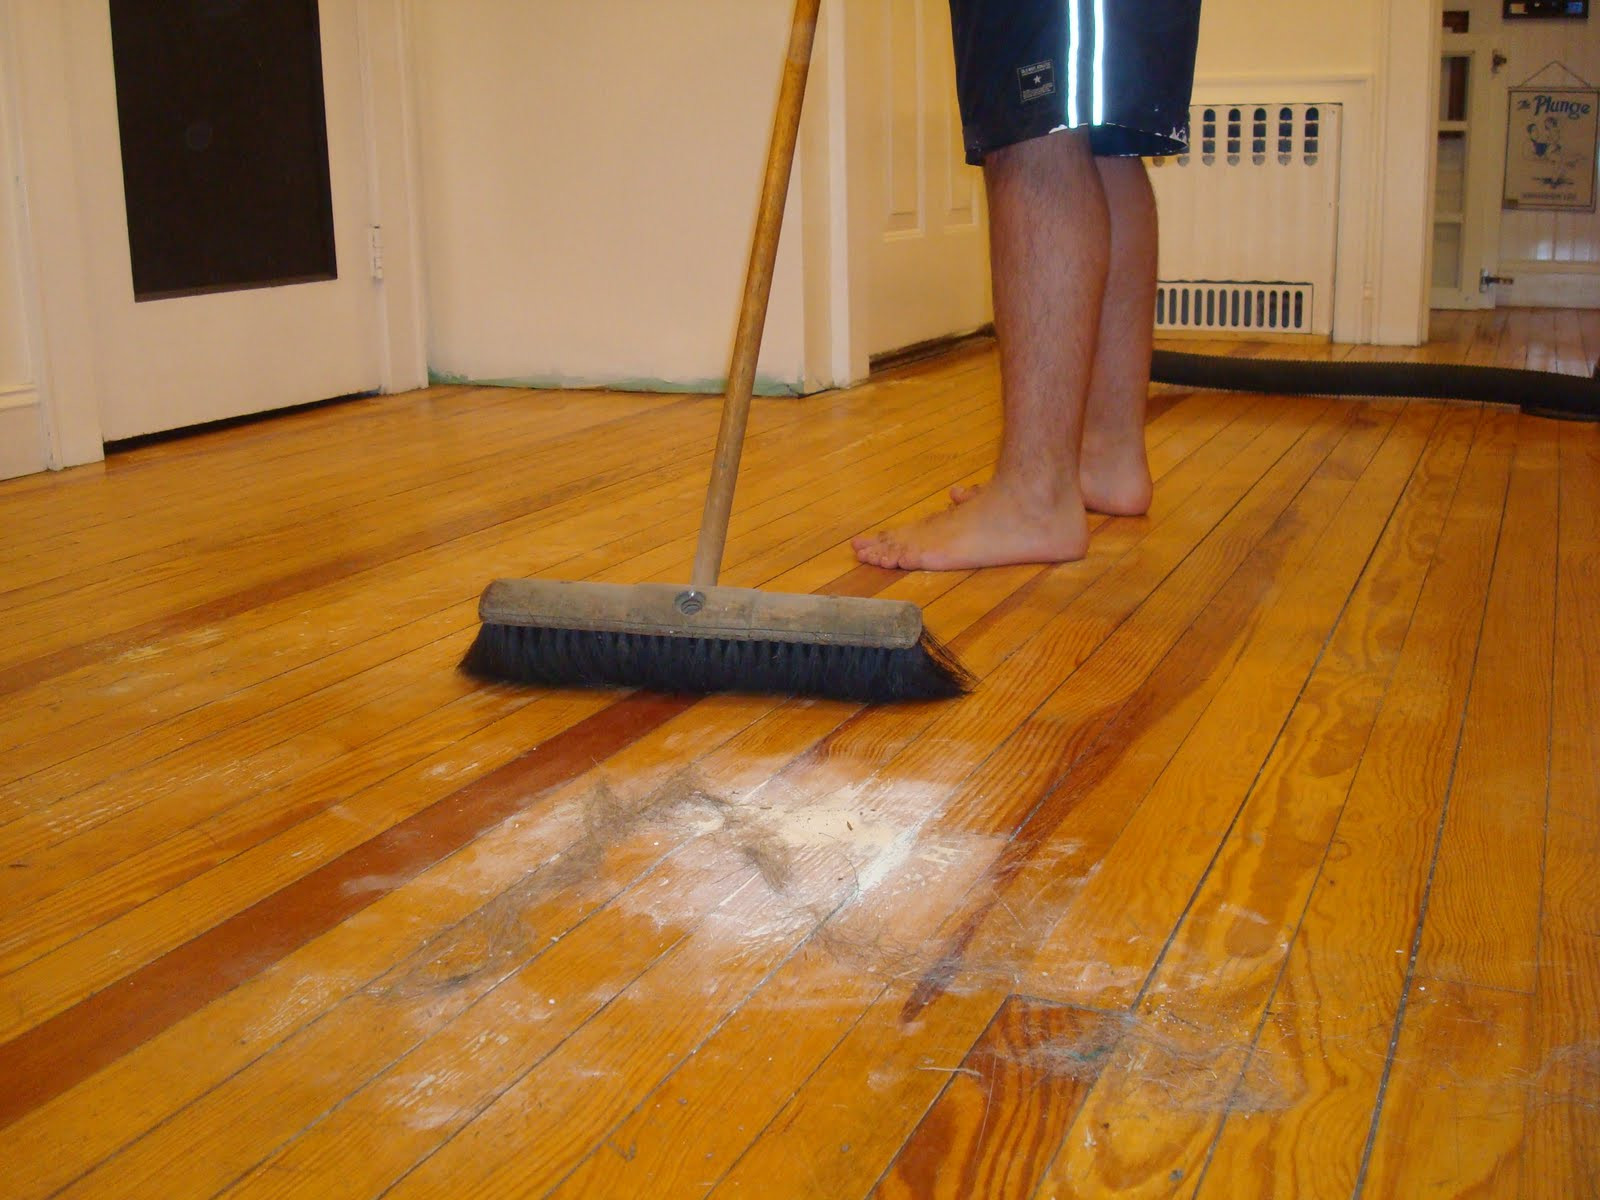 Can I Clean Hardwood Floors with Vinegar and Water Of Cleaning Hardwood Floors with Vinegar Hardwood Floor Cleaning How Do Intended for Cleaning Hardwood Floors with Vinegar Hardwood Floor Cleaning How Do You Clean Hardwood Floors Cleaning